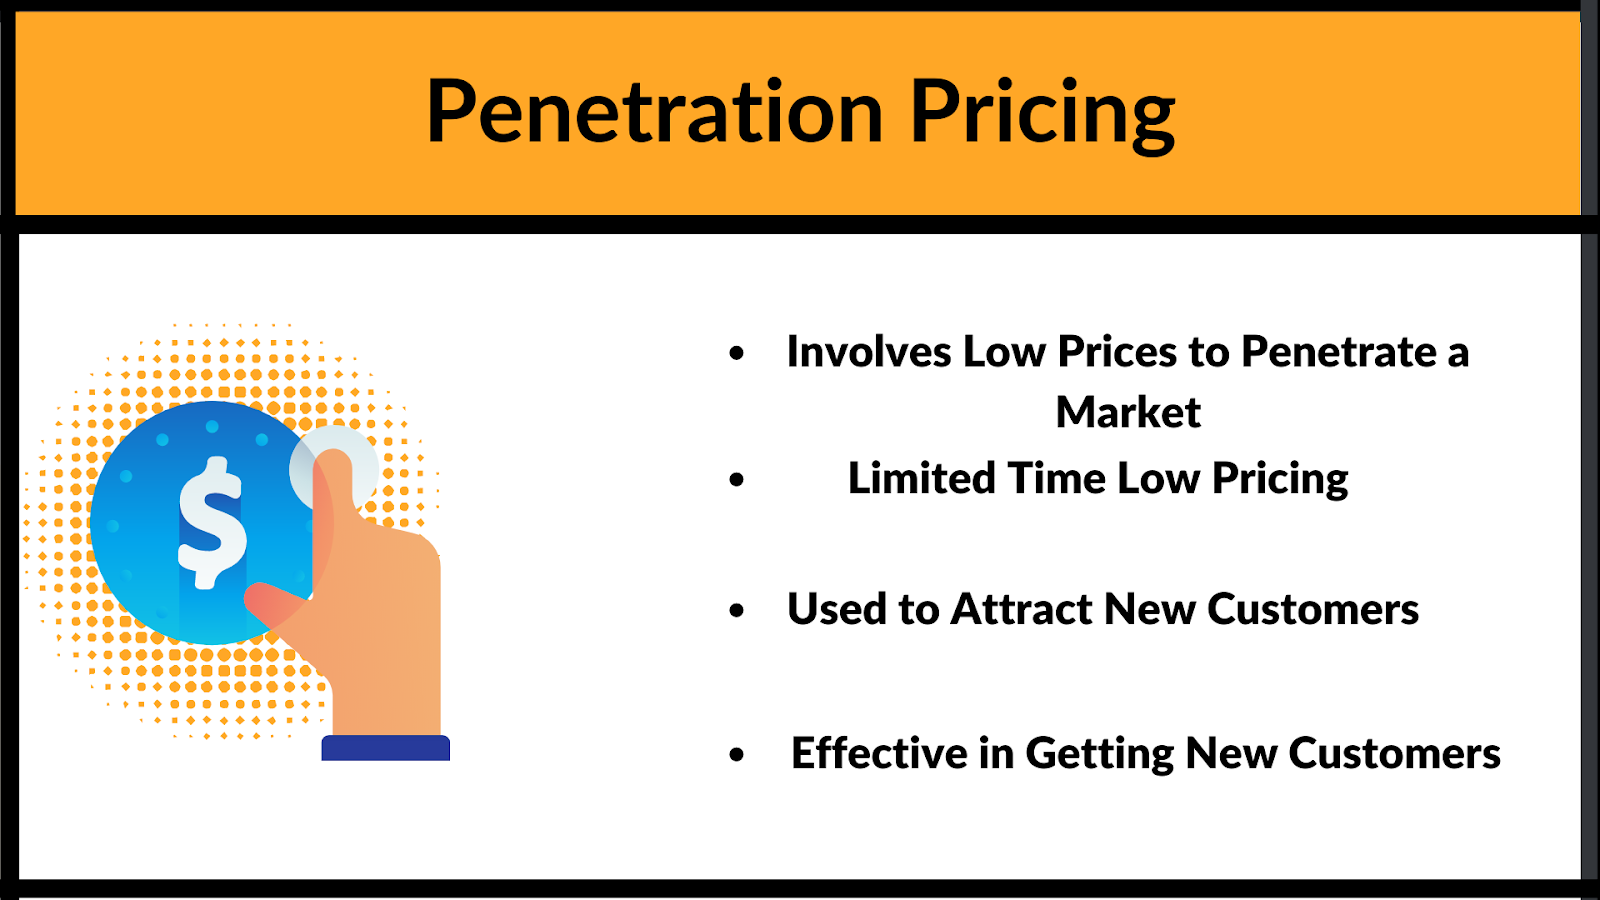 What is Penetration pricing and what are some examples